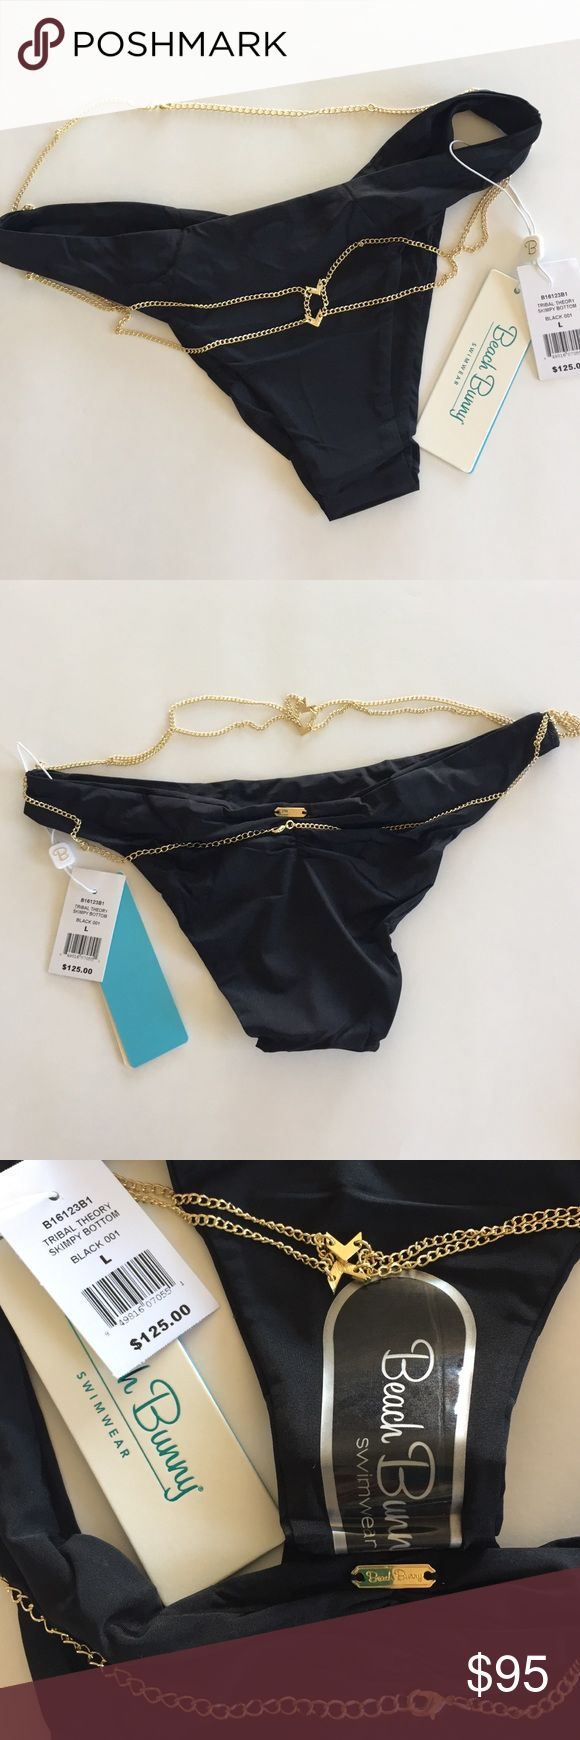 Beach Bunny skimpy bottoms Beach Bunny Tribal Theory black skimpy bikini bottoms, size large.  Gold chain detail with partial shirring & gold name plate in back.  NWT and hygiene liner intact. Beach Bunny Swim Bikinis